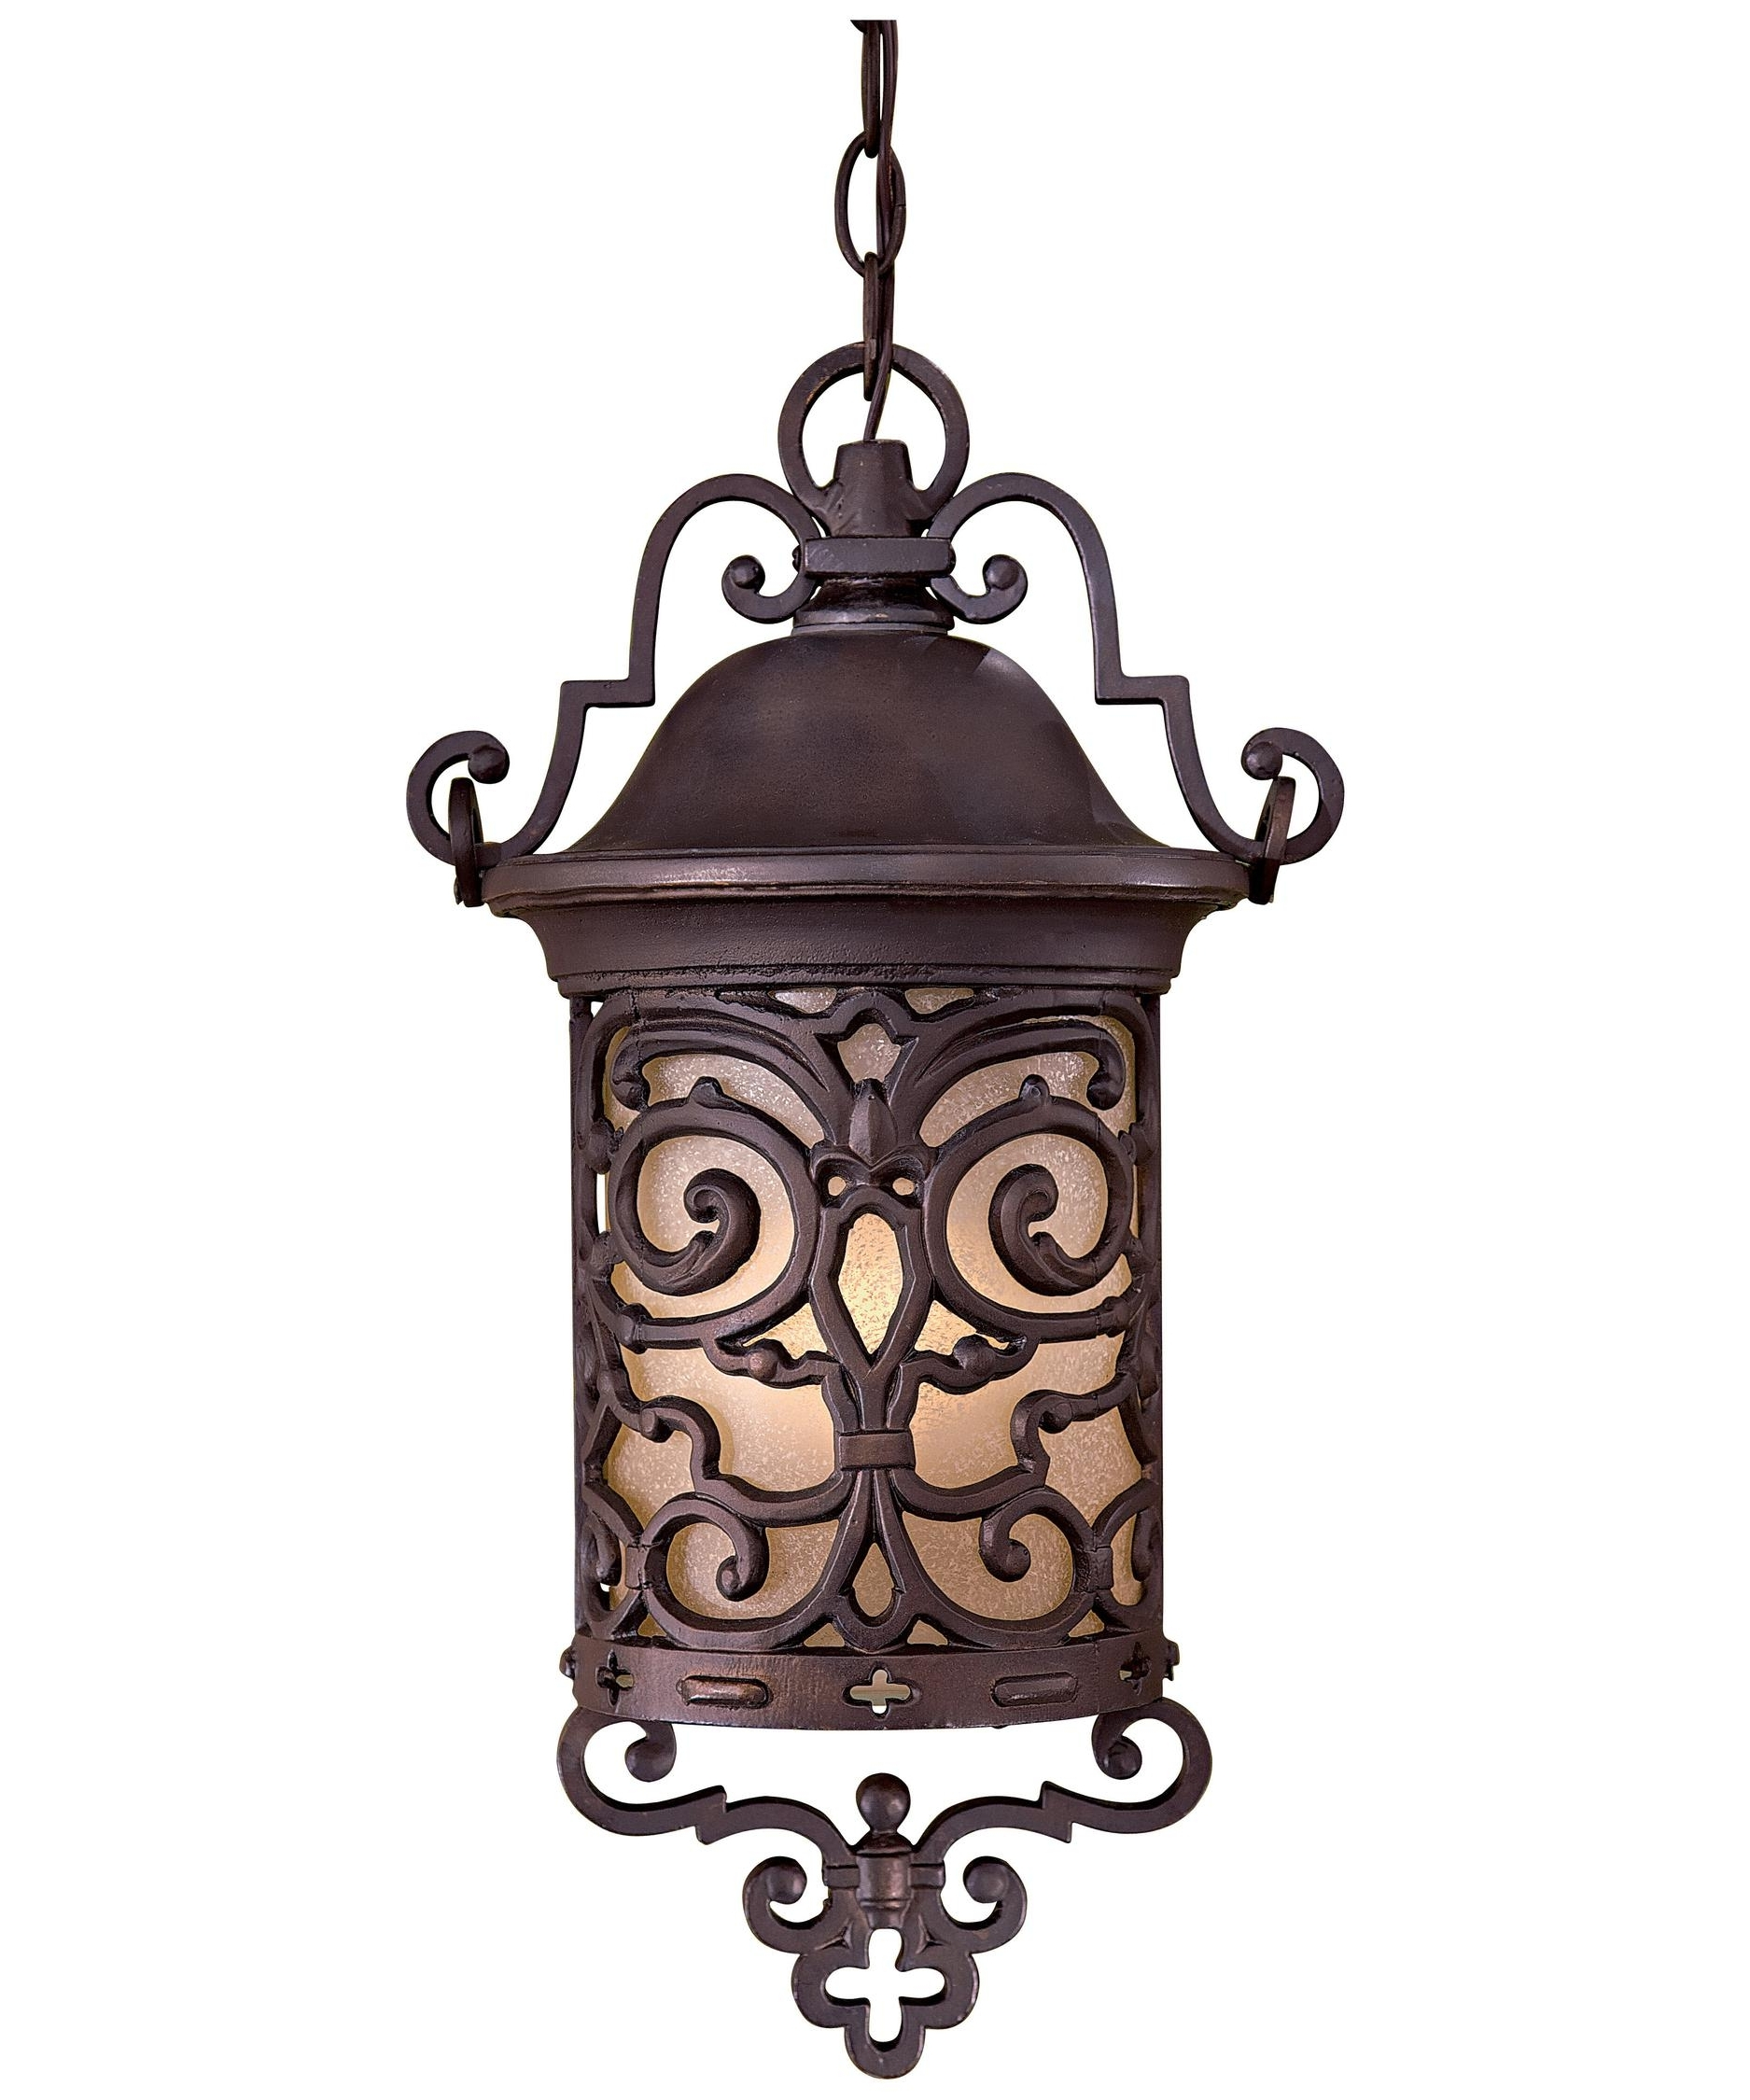 Minka Lavery 9194 Chelsea Road 11 Inch Wide 1 Light Outdoor Hanging Throughout Favorite Outdoor Iron Hanging Lights (View 6 of 20)